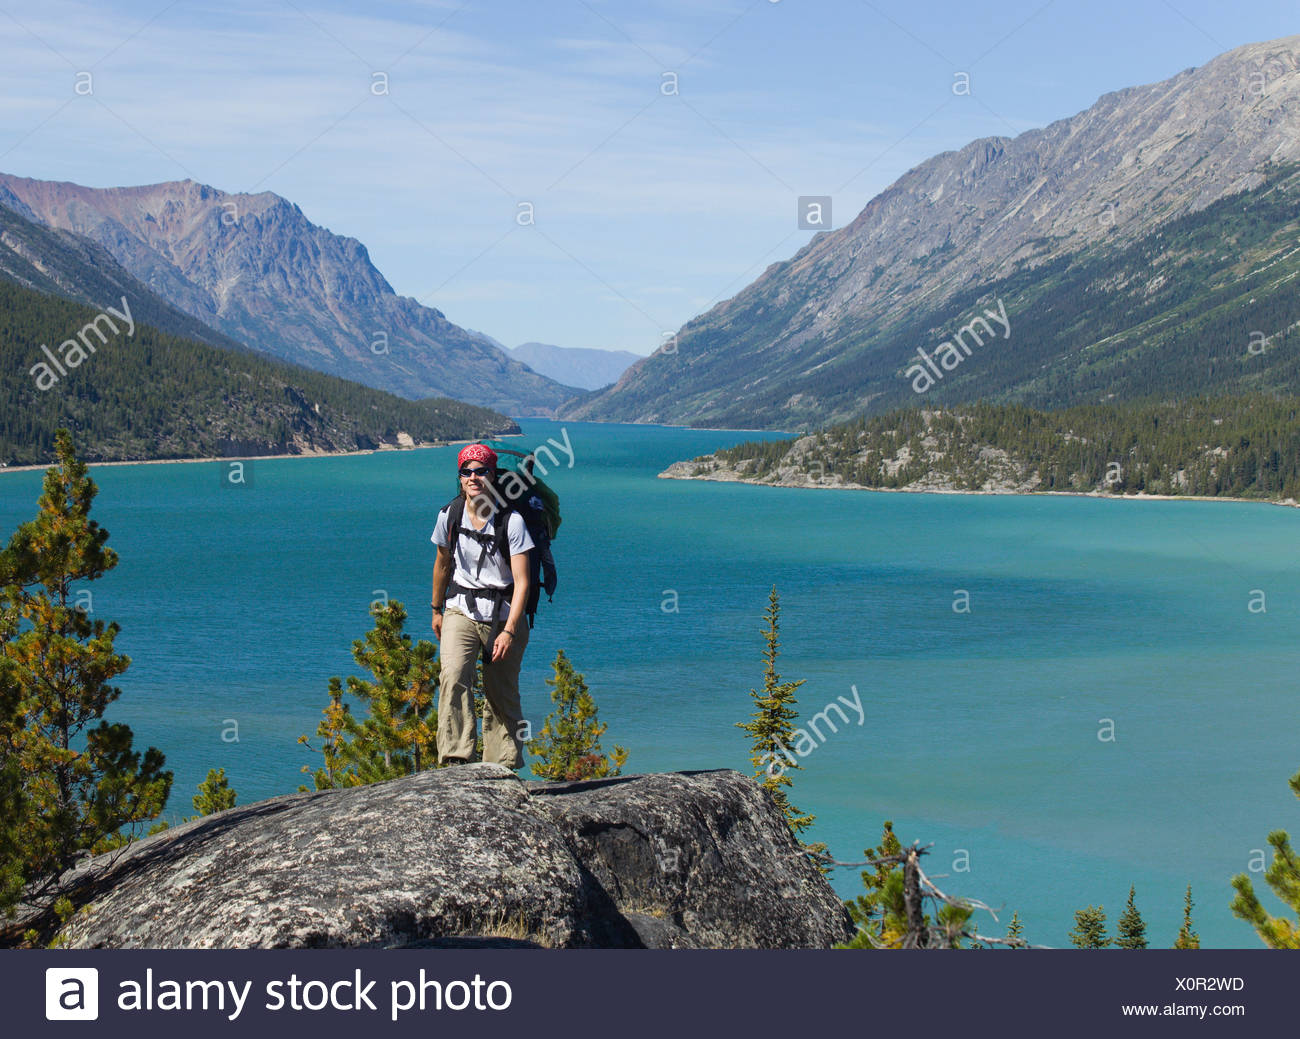 Young woman hiking, backpacking, hiker with backpack, historic Chilkoot Pass, Chilkoot Trail, Lake Bennett behind - Stock Image